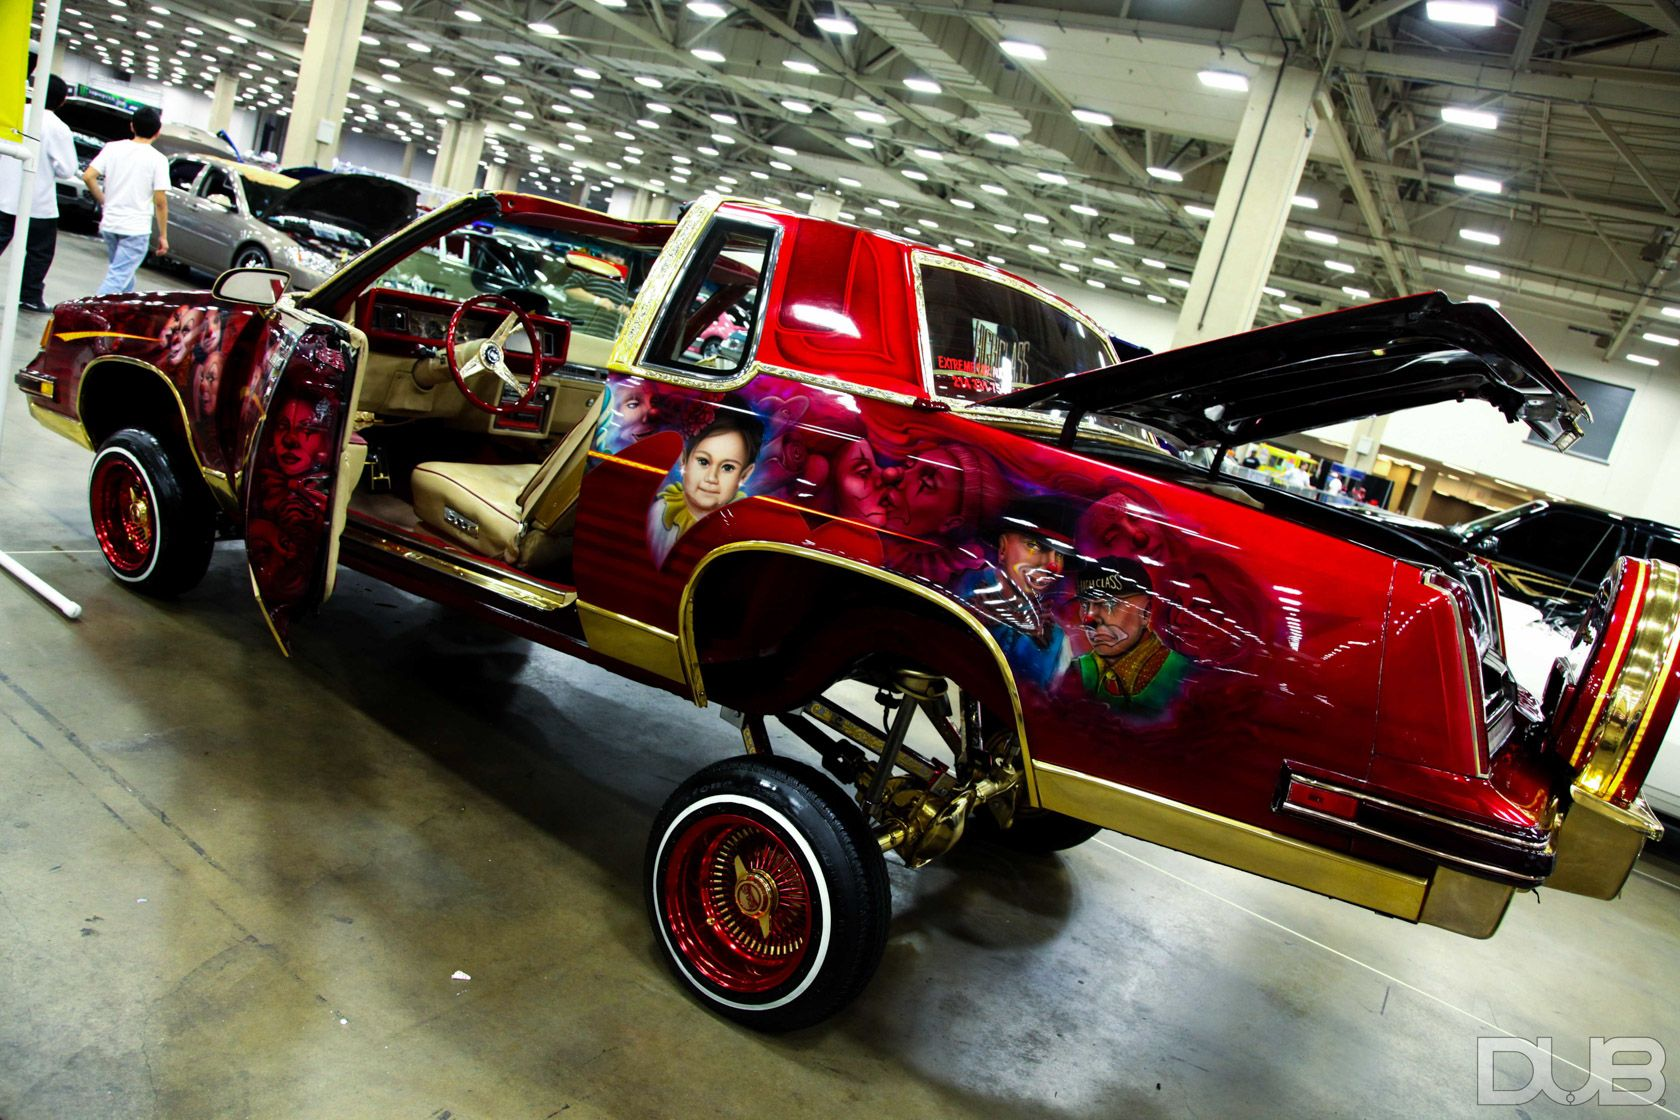 Dallas Dub Car Show Click To Enlarge Image DUBSHOWdallas - Lowrider car show dallas